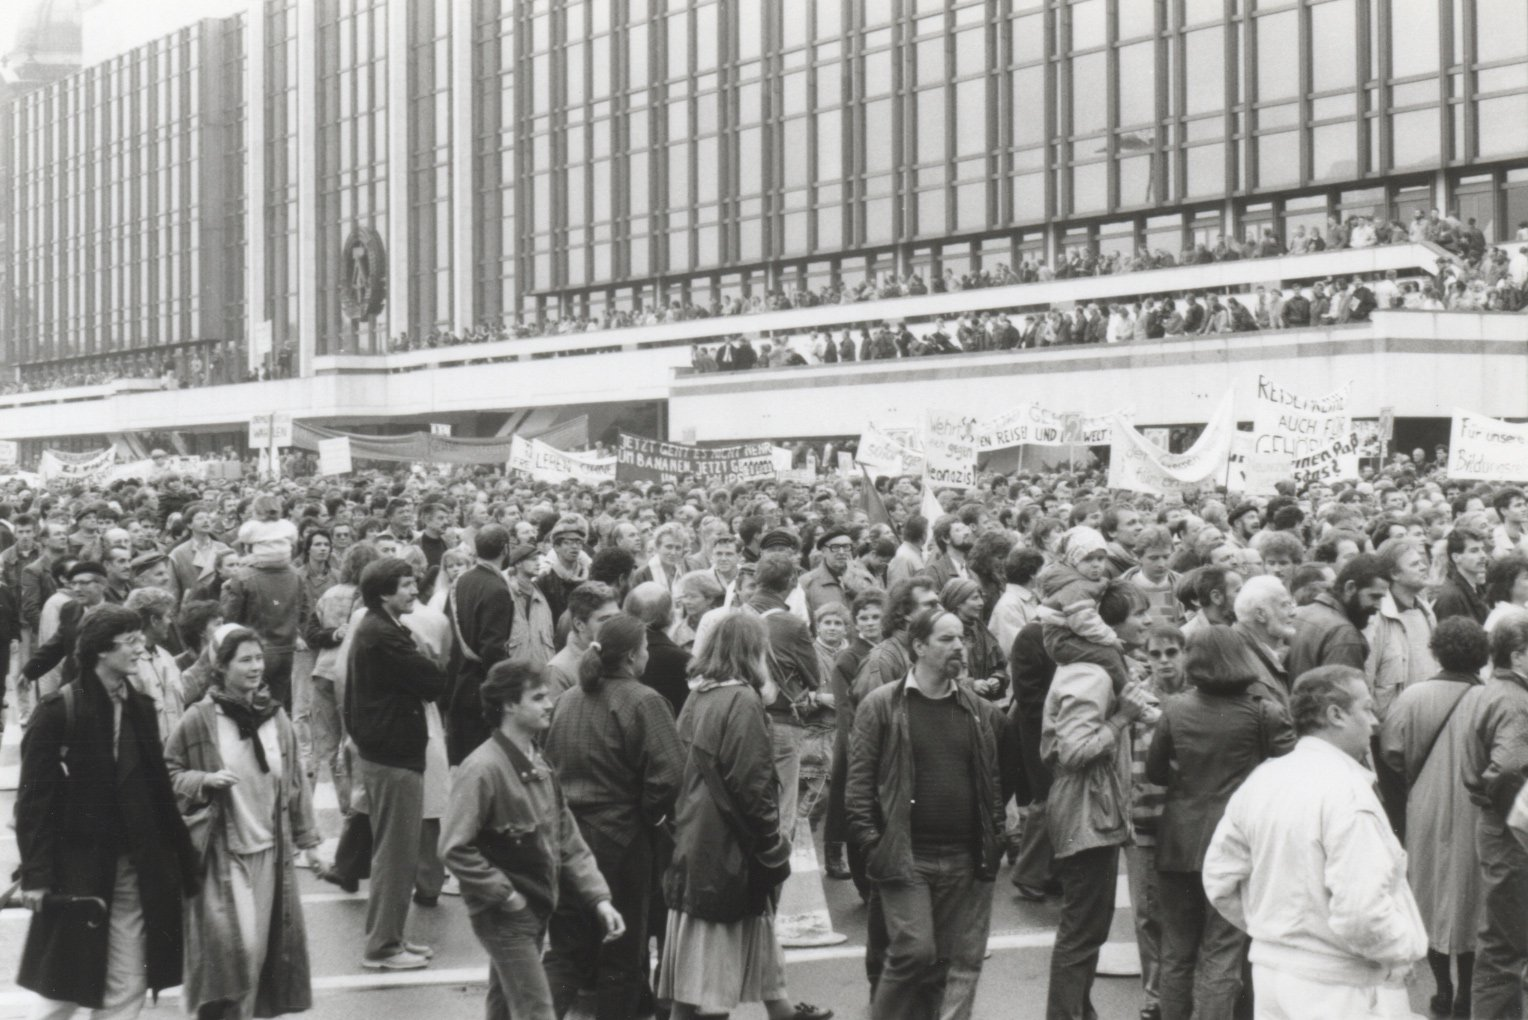 Kundgebung in Ost-Berlin, 4. November 1989